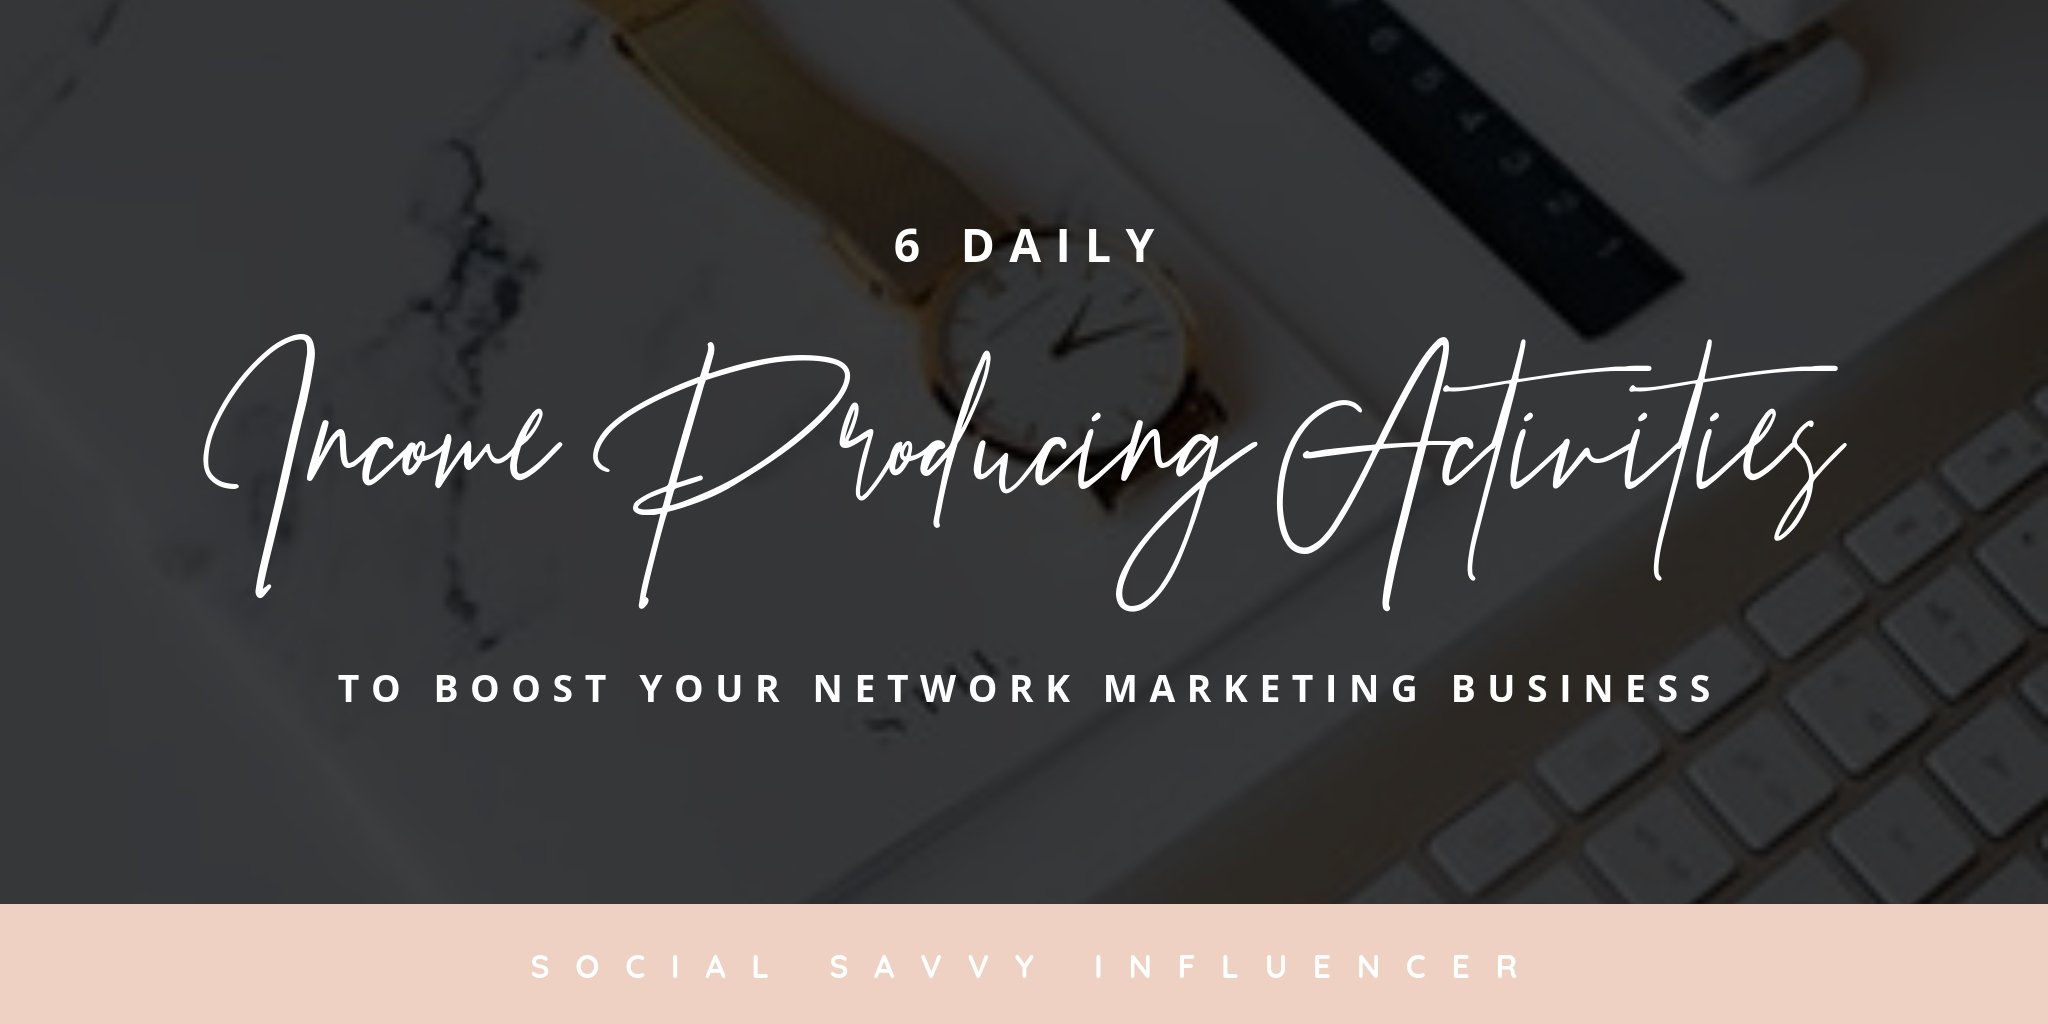 6 Daily Income Producing Activities To Boost Your Network Marketing Business -HEADER.jpg